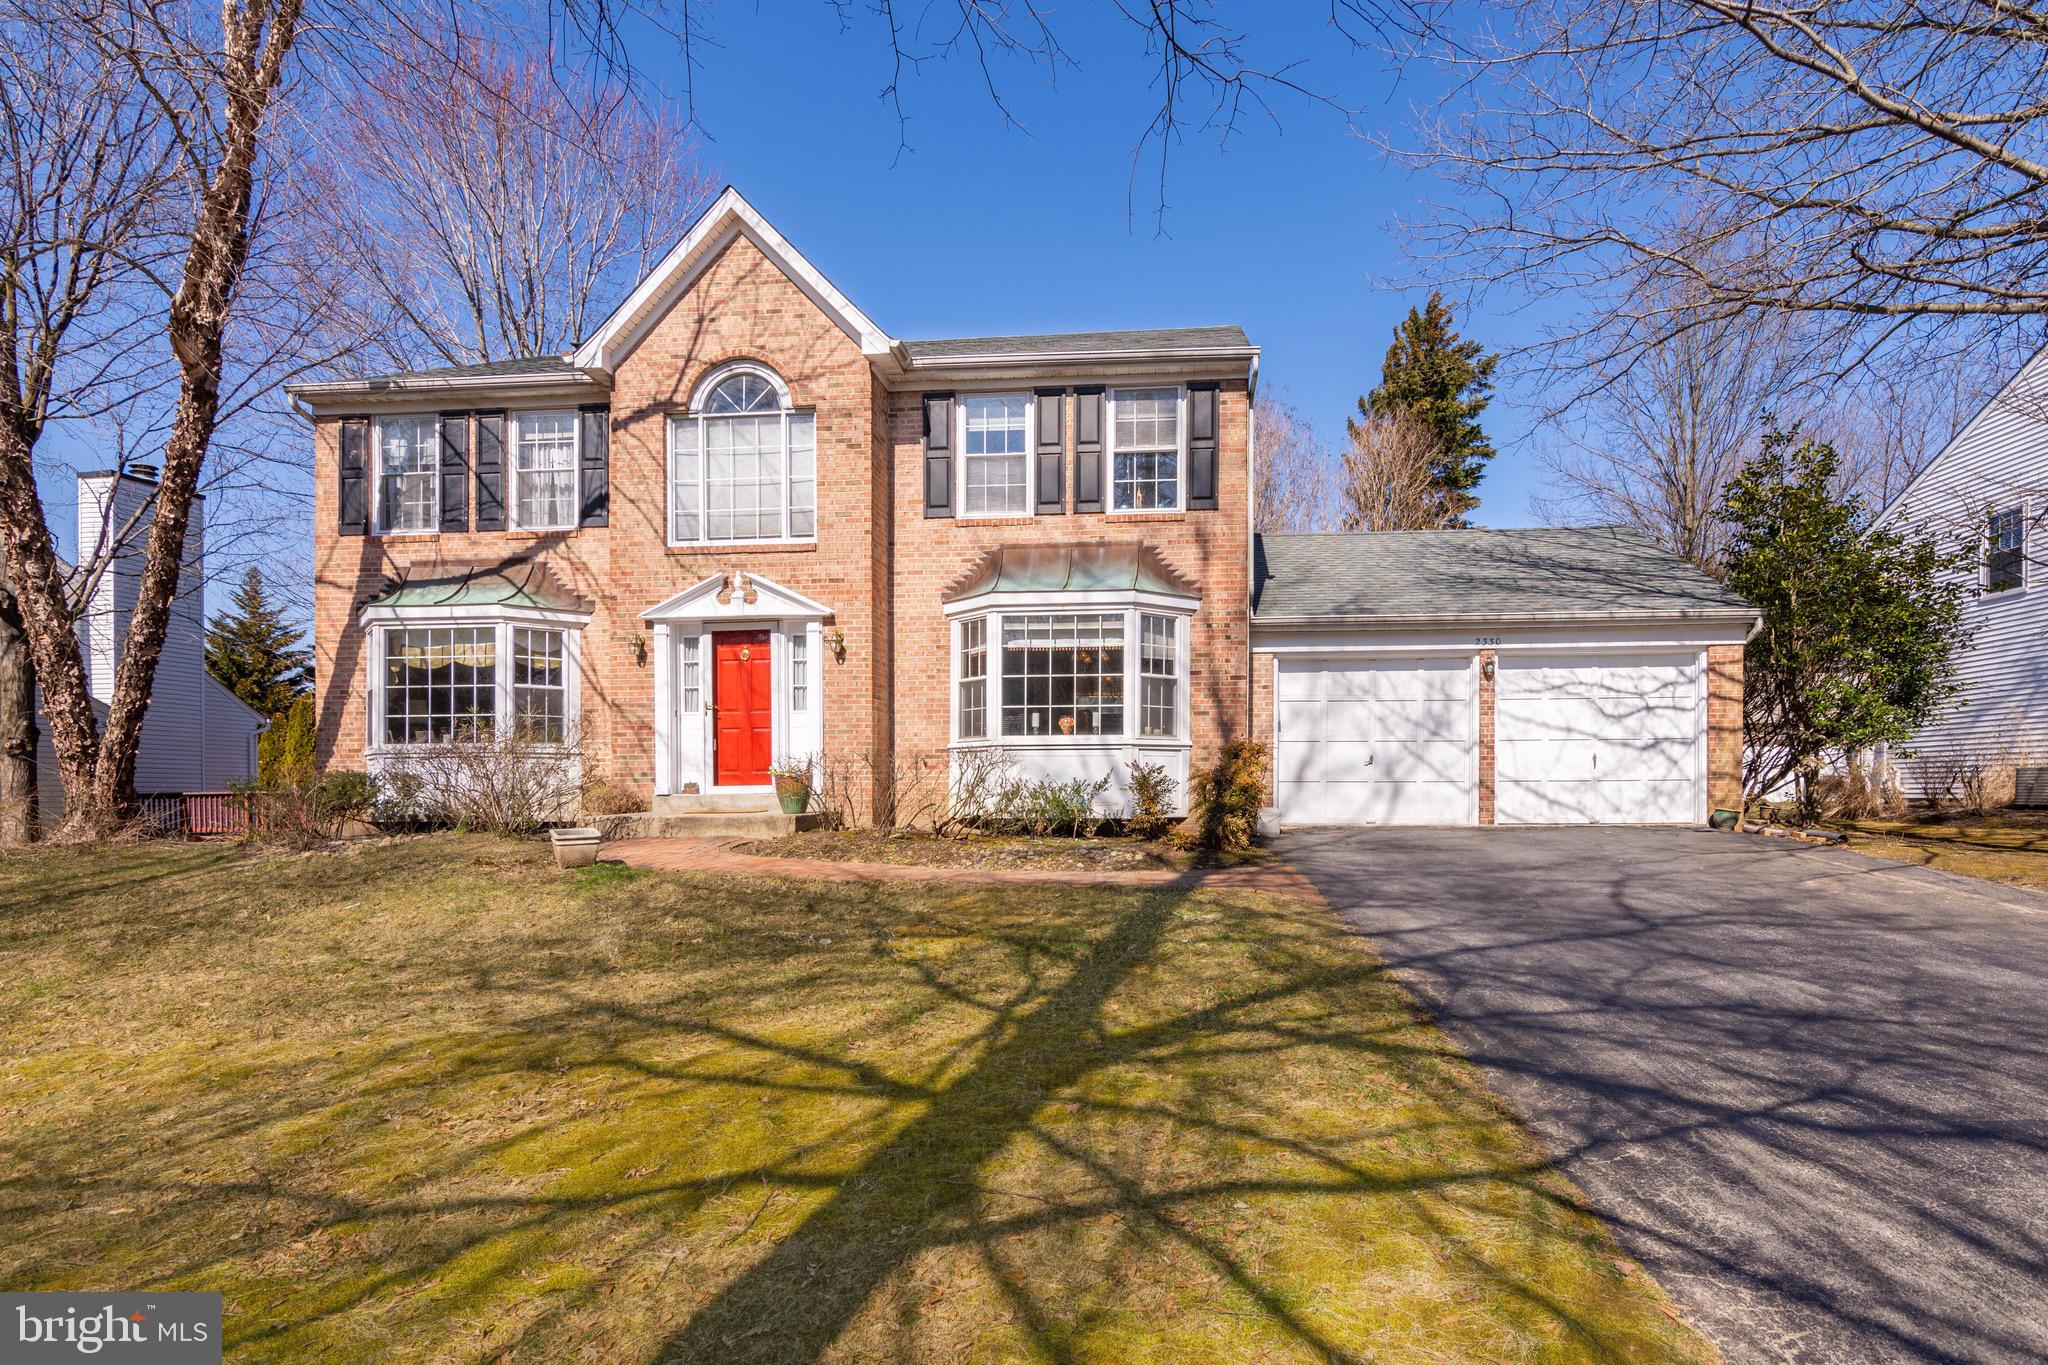 2330 NANTUCKET DRIVE, CROFTON, MD 21114